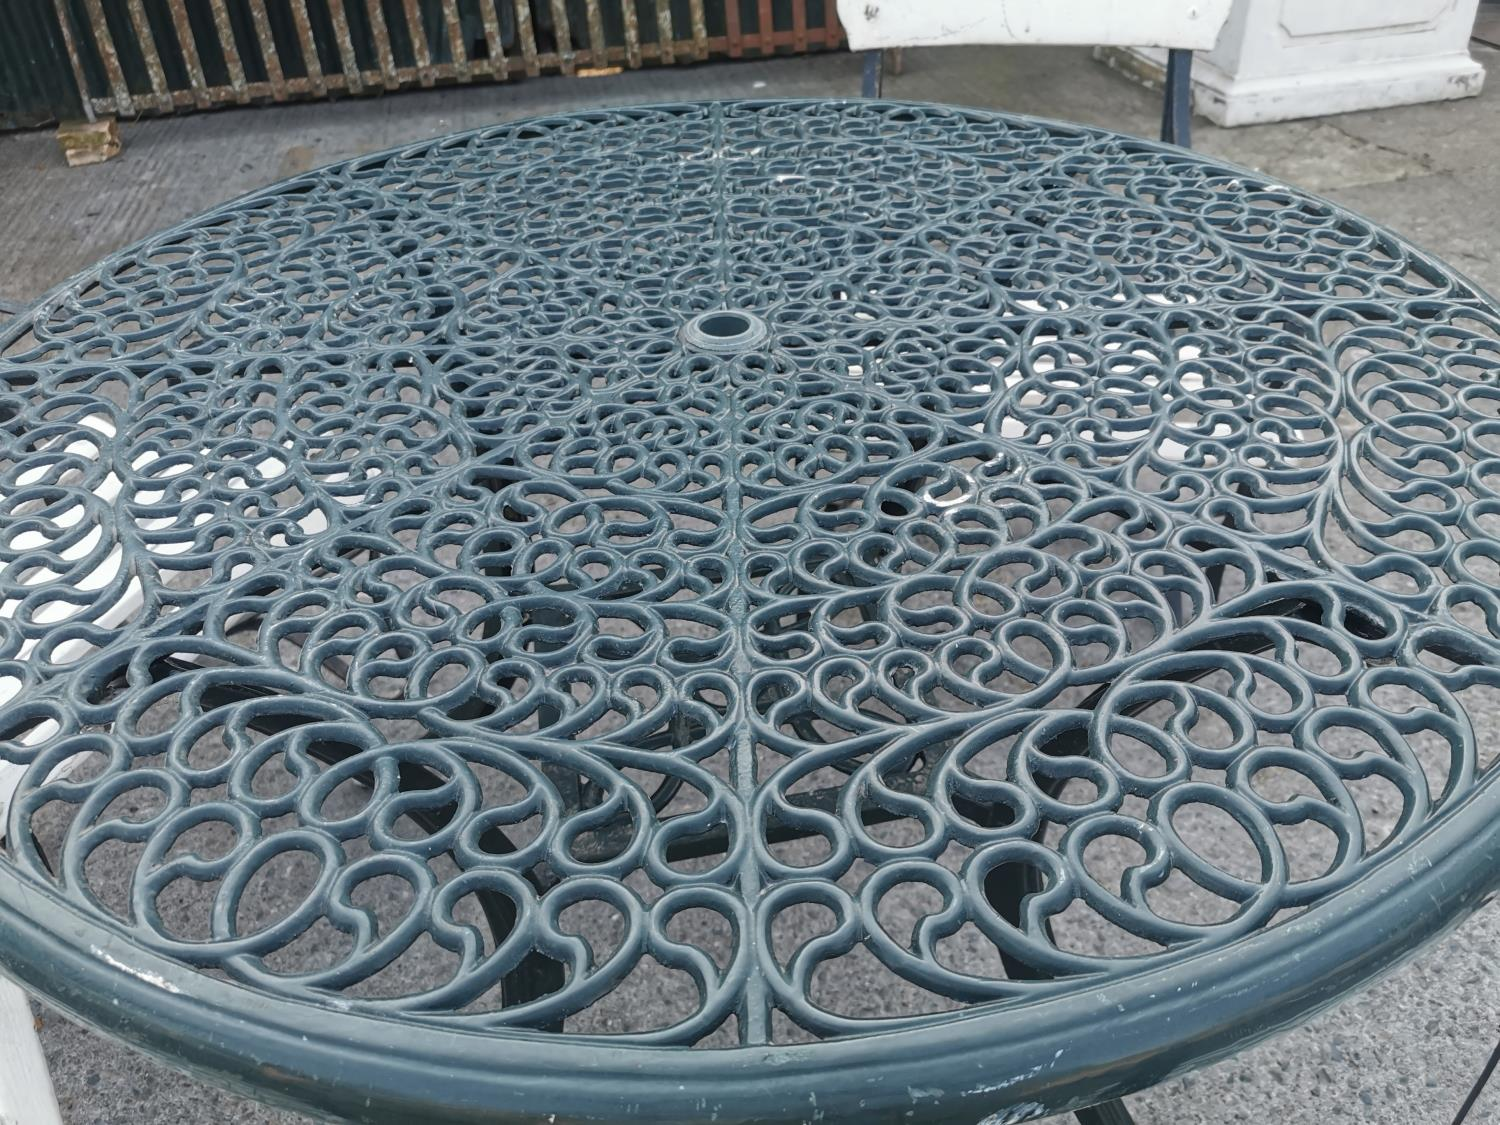 Decorative cast alloy garden table - Image 2 of 2